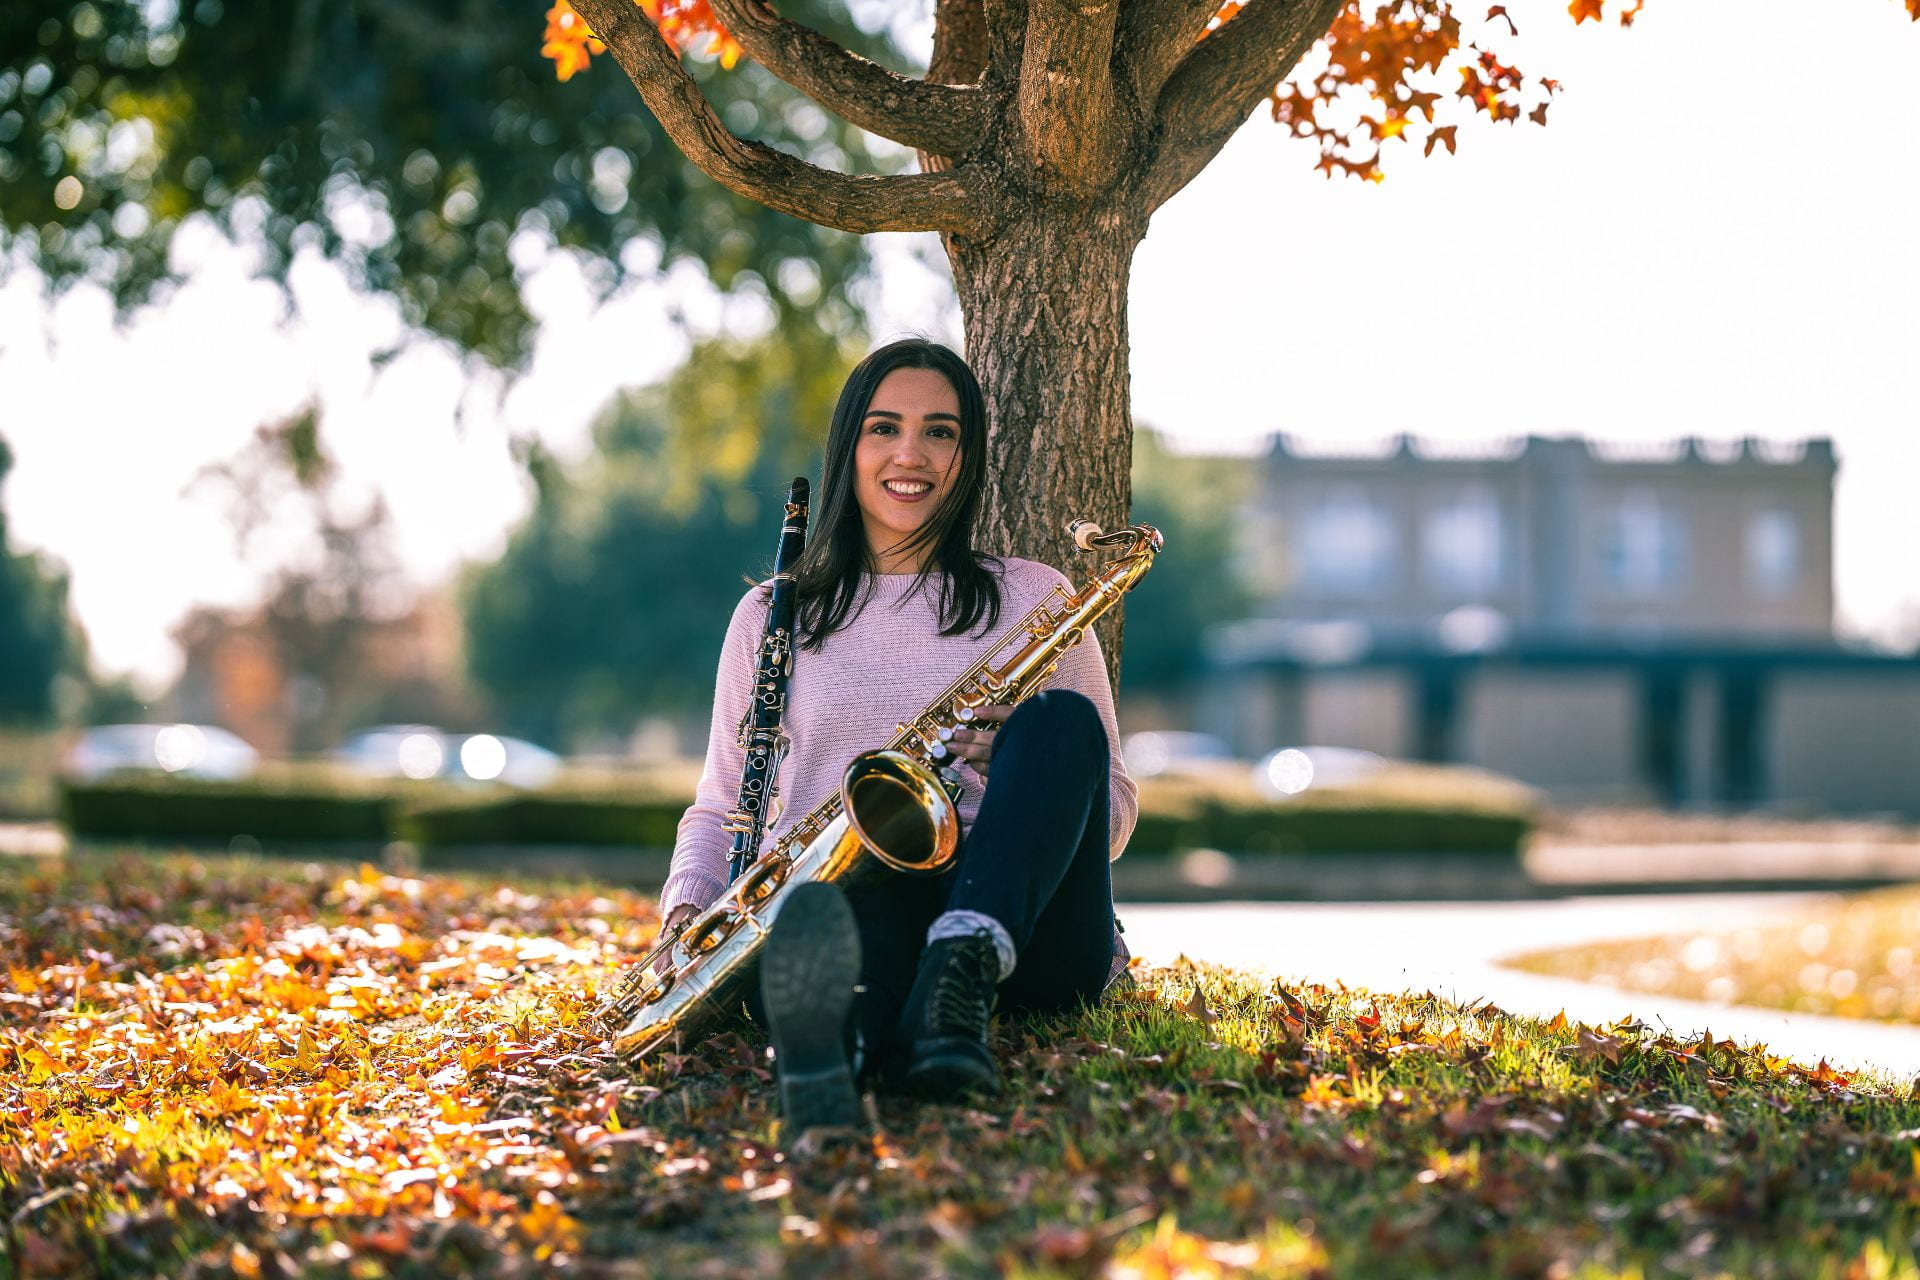 TXST Alum Lizzy Mora sitting under a tree holding a clarinet and a tenor saxophone